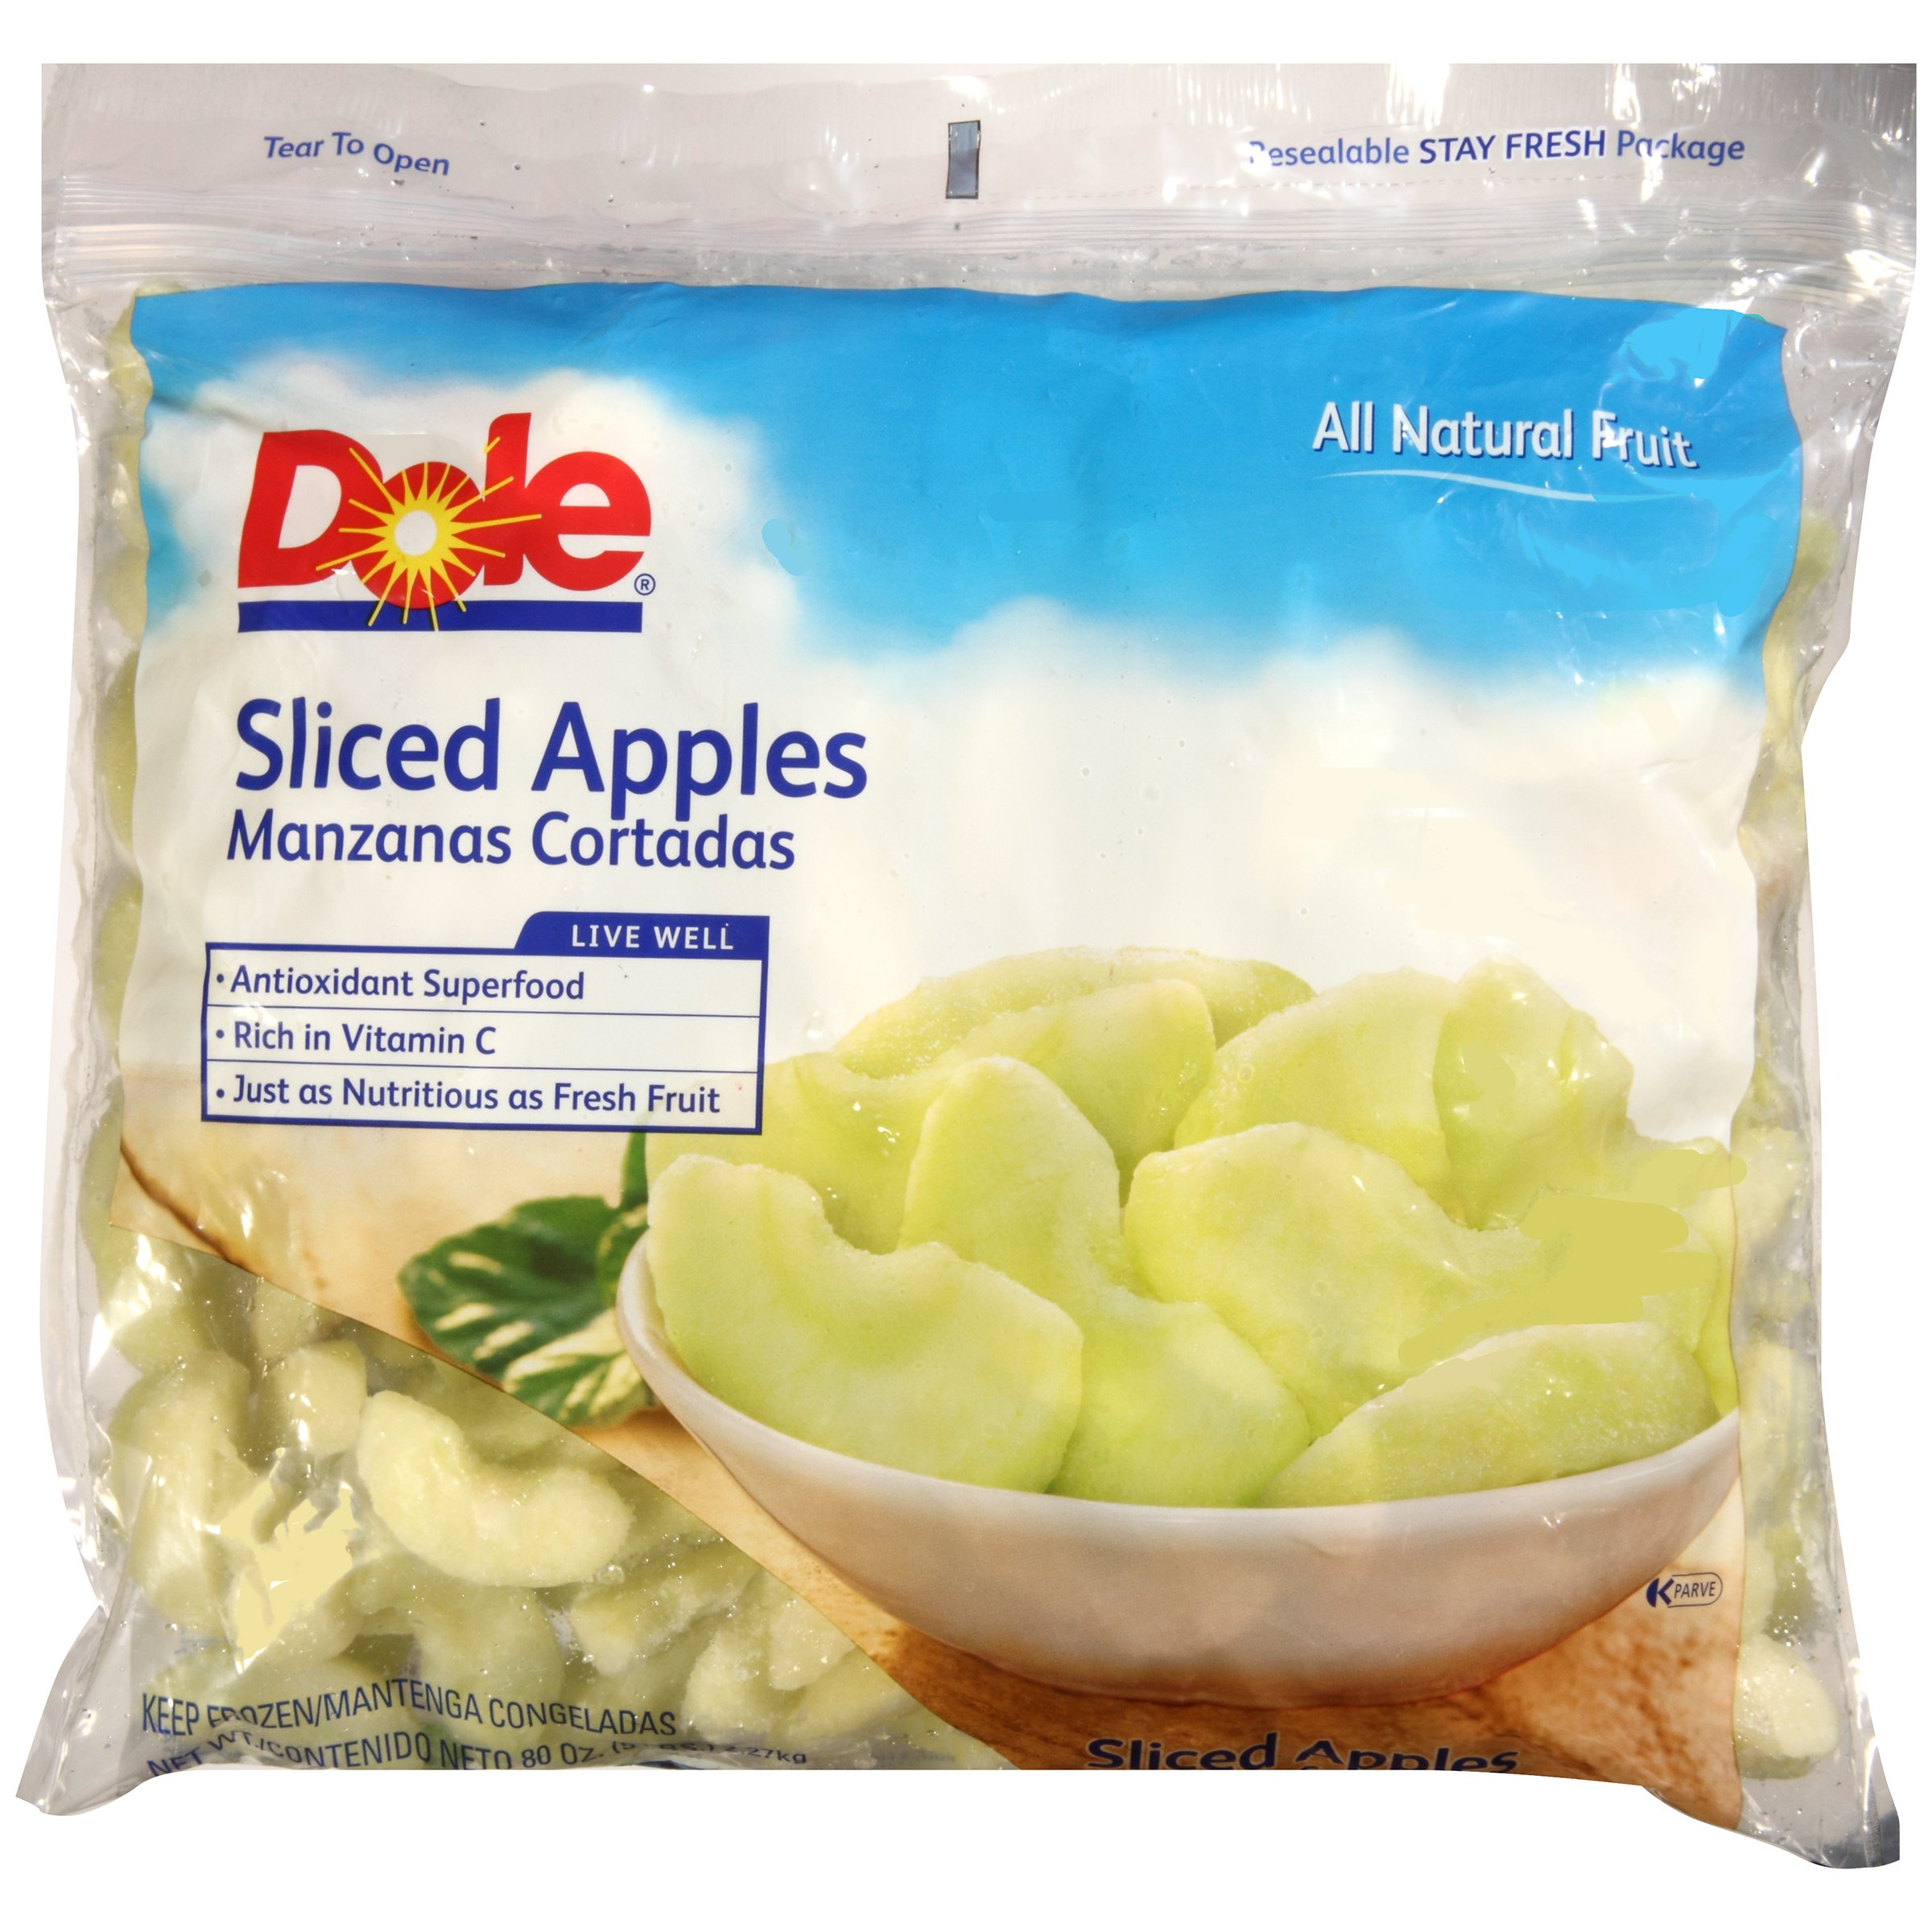 Dole Sliced Apples, 5 lb, (2 count)